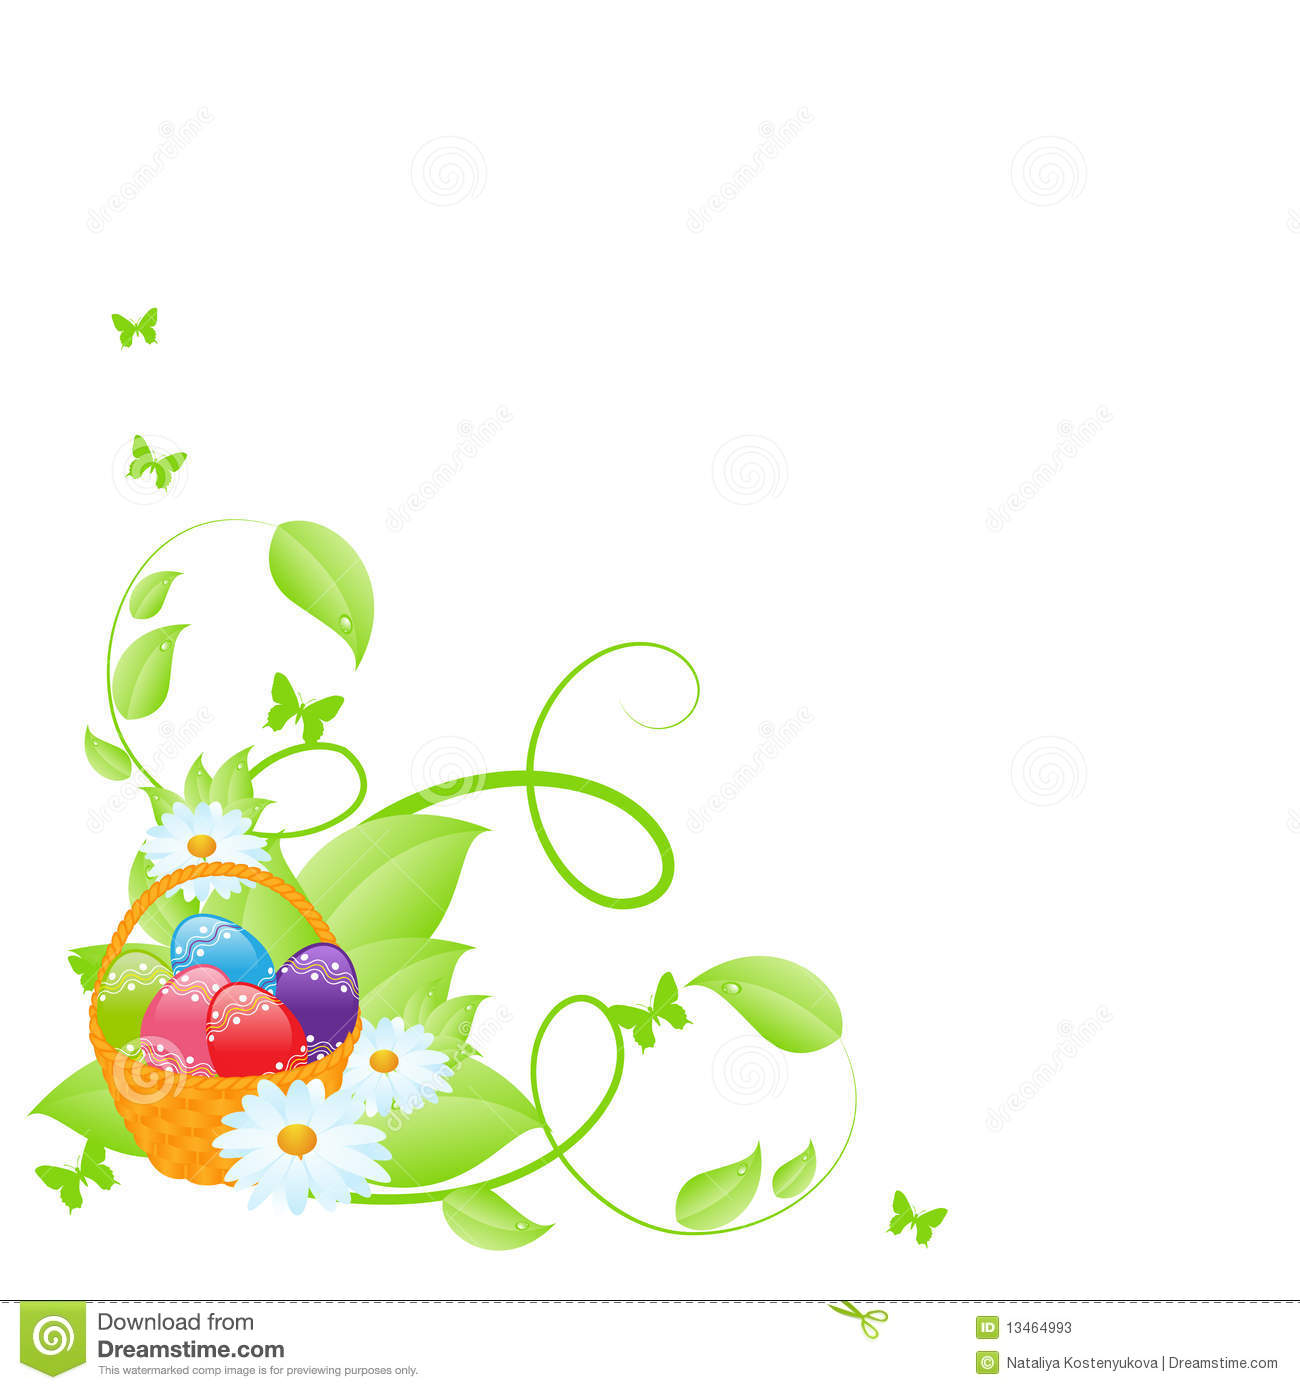 Easter corner clipart graphic download Easter corner clipart - ClipartFest graphic download